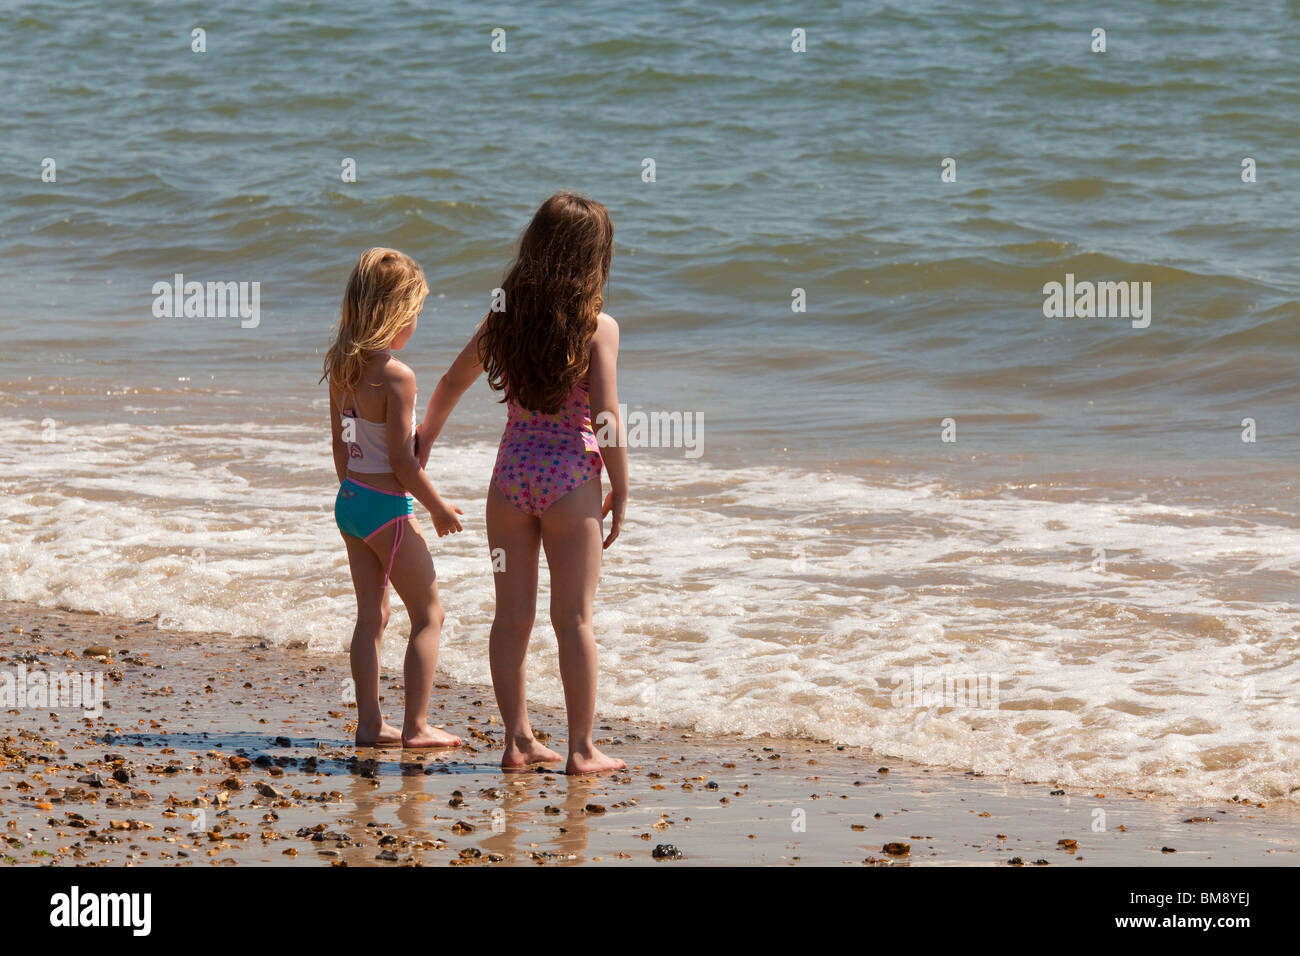 two young girls in swim suits standing together at edge of sea on beach looking out to sea Stock Photo